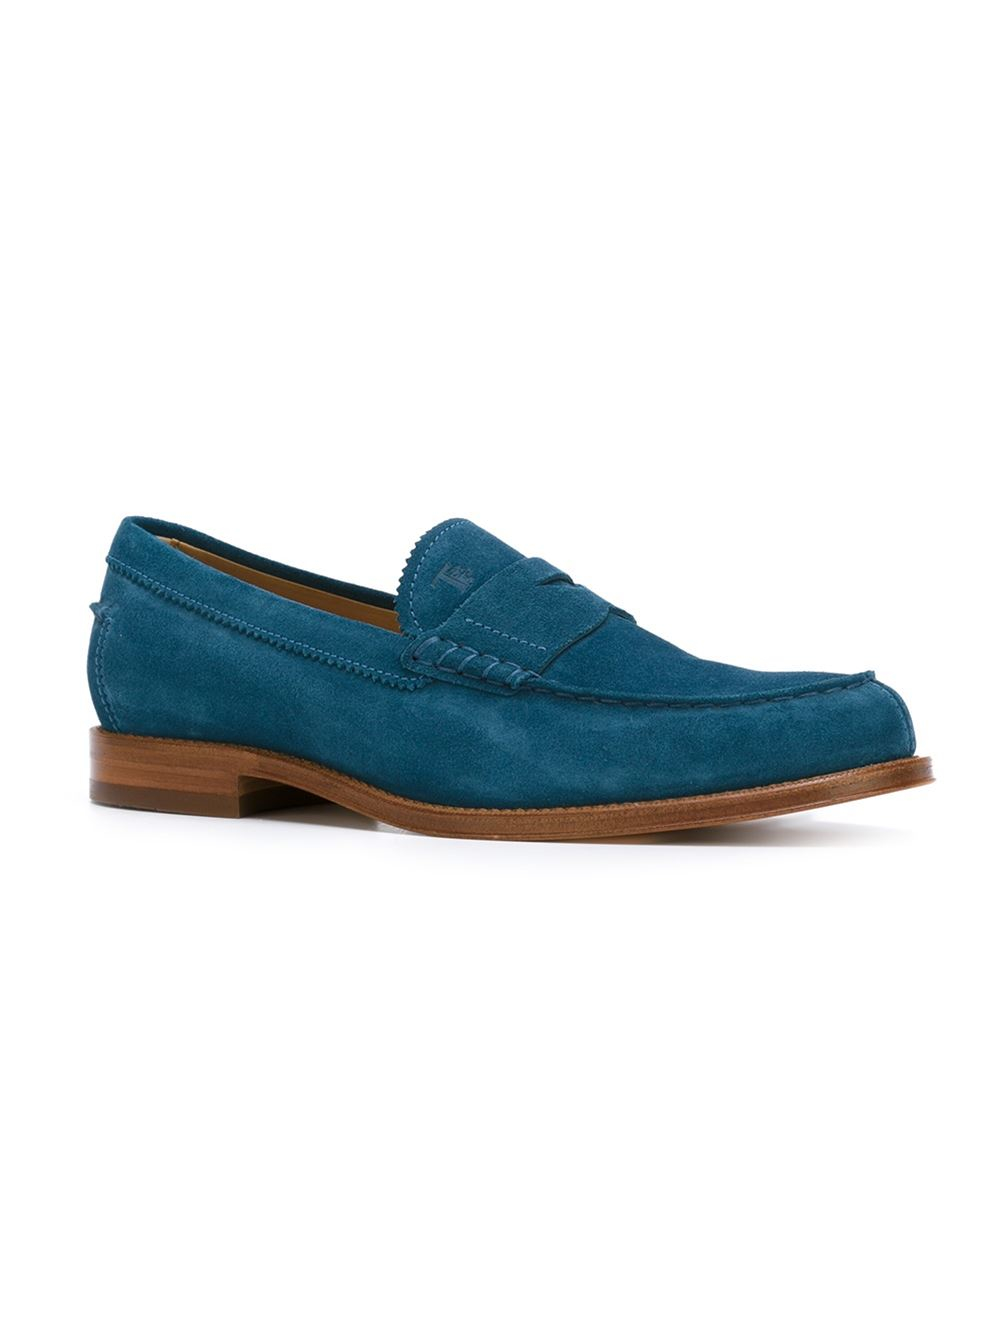 Tod's Classic Penny Loafers in Blue for Men - Lyst